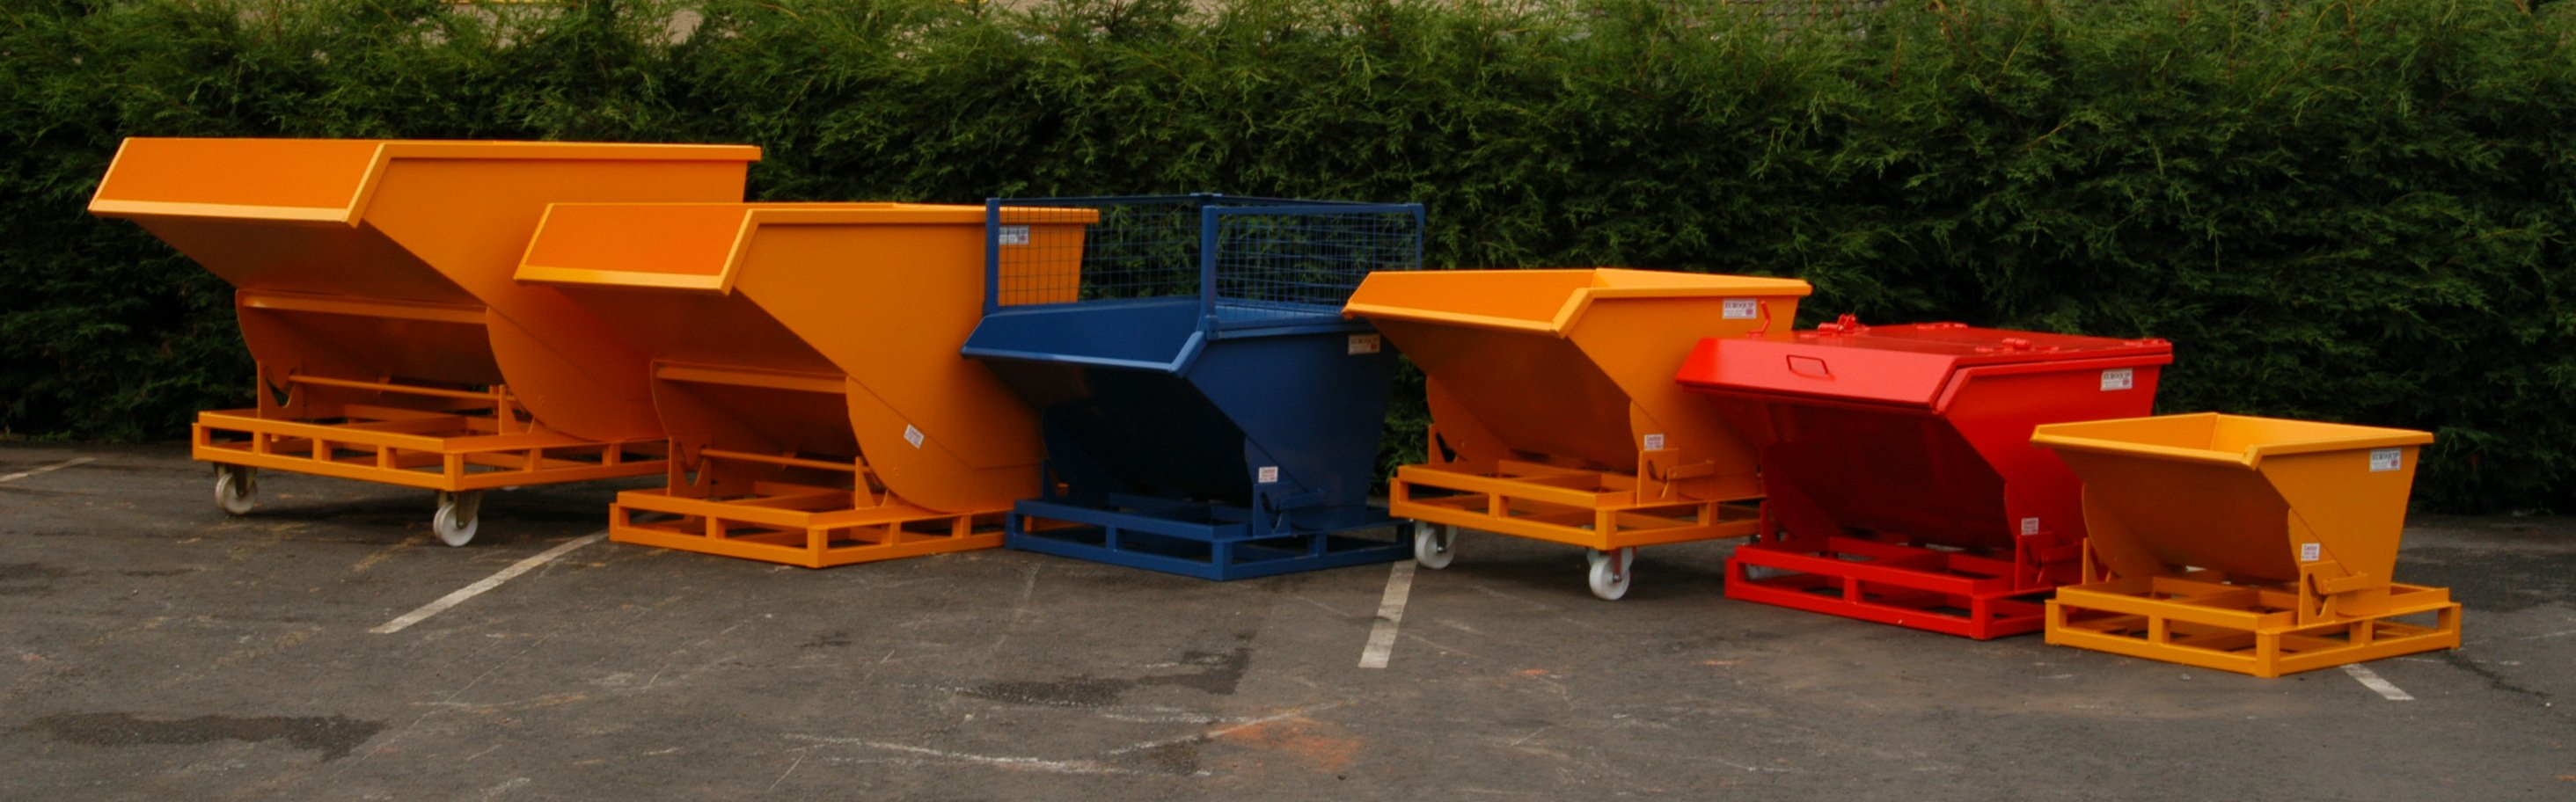 Euroquip's range of Forklift Tipping Skips